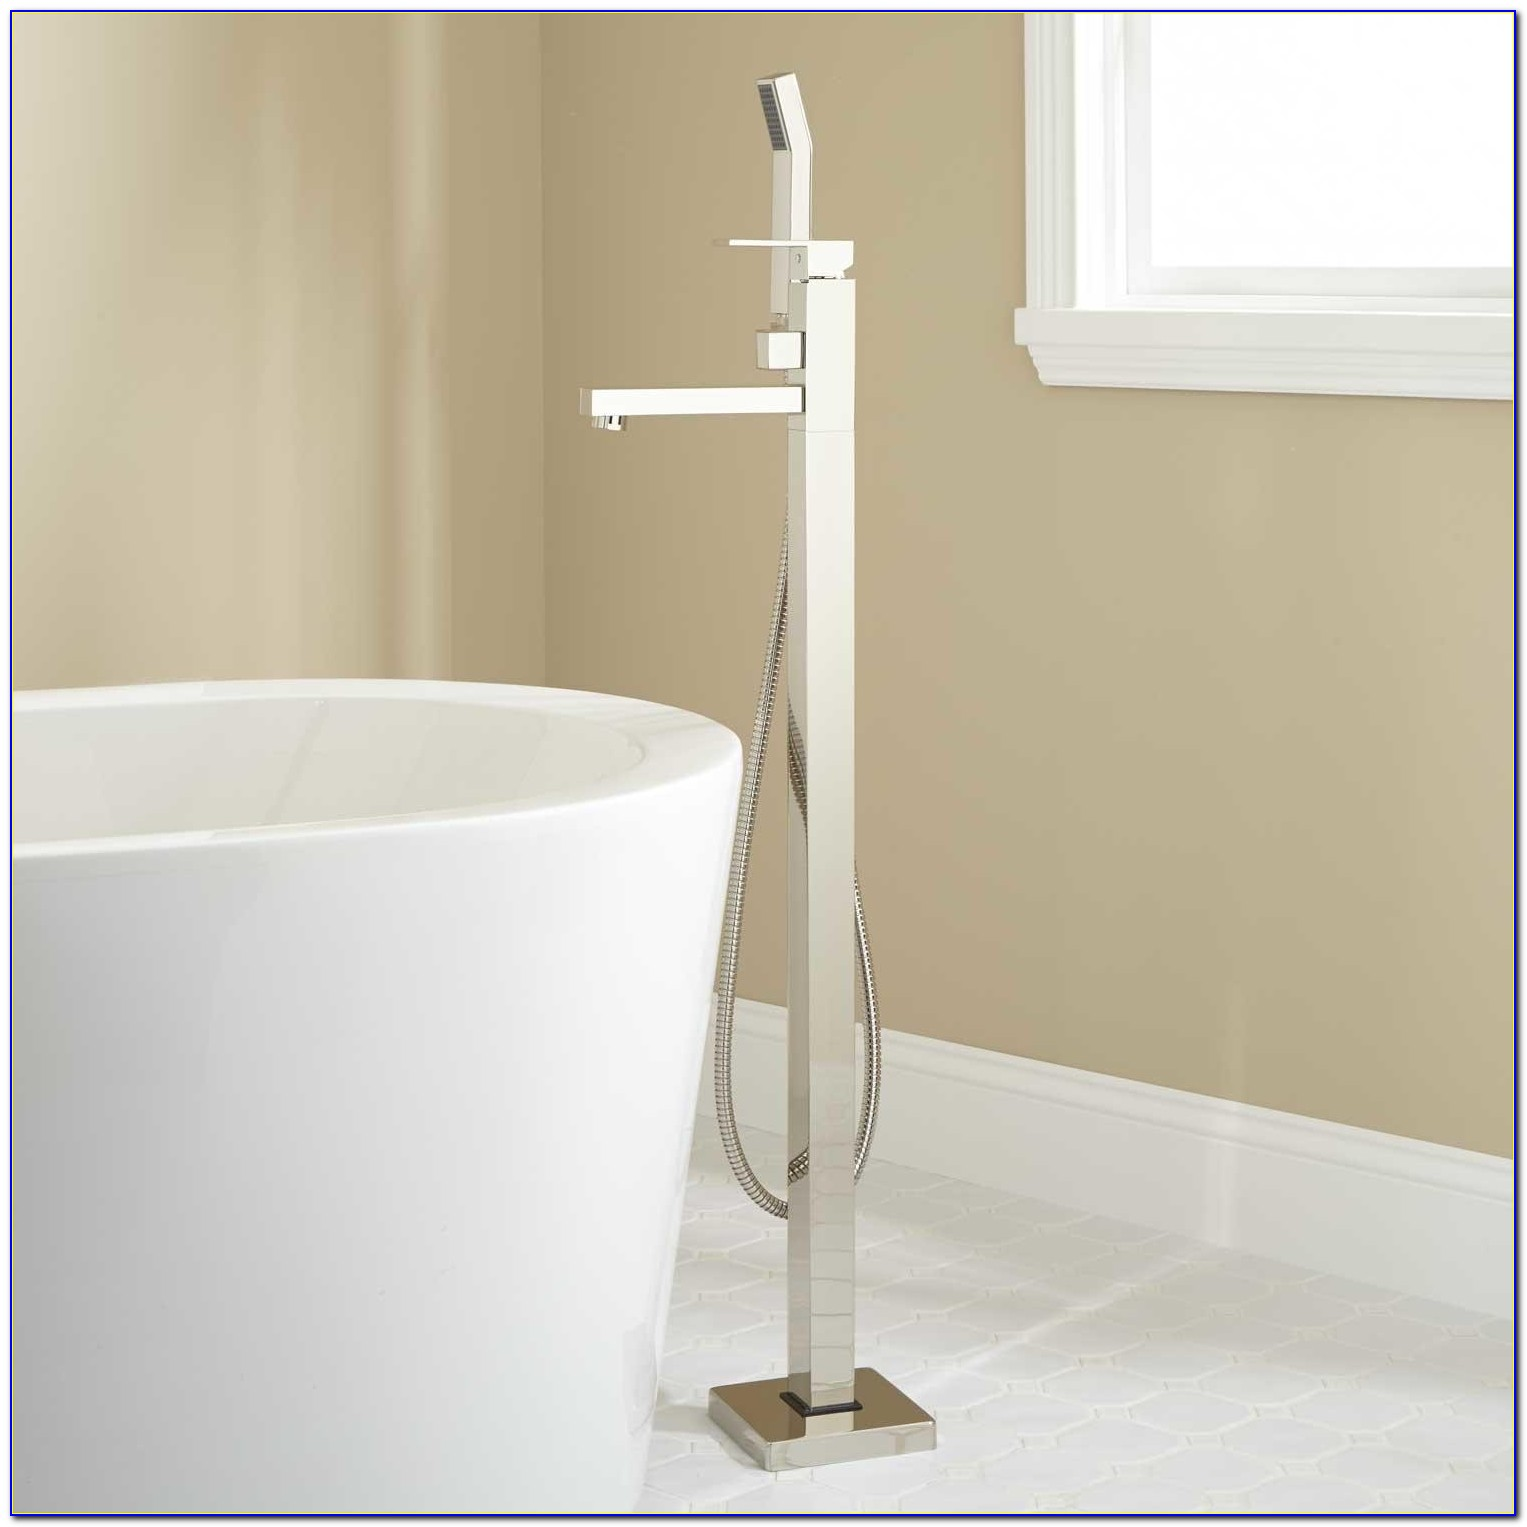 Wall Faucets For Freestanding Tubs